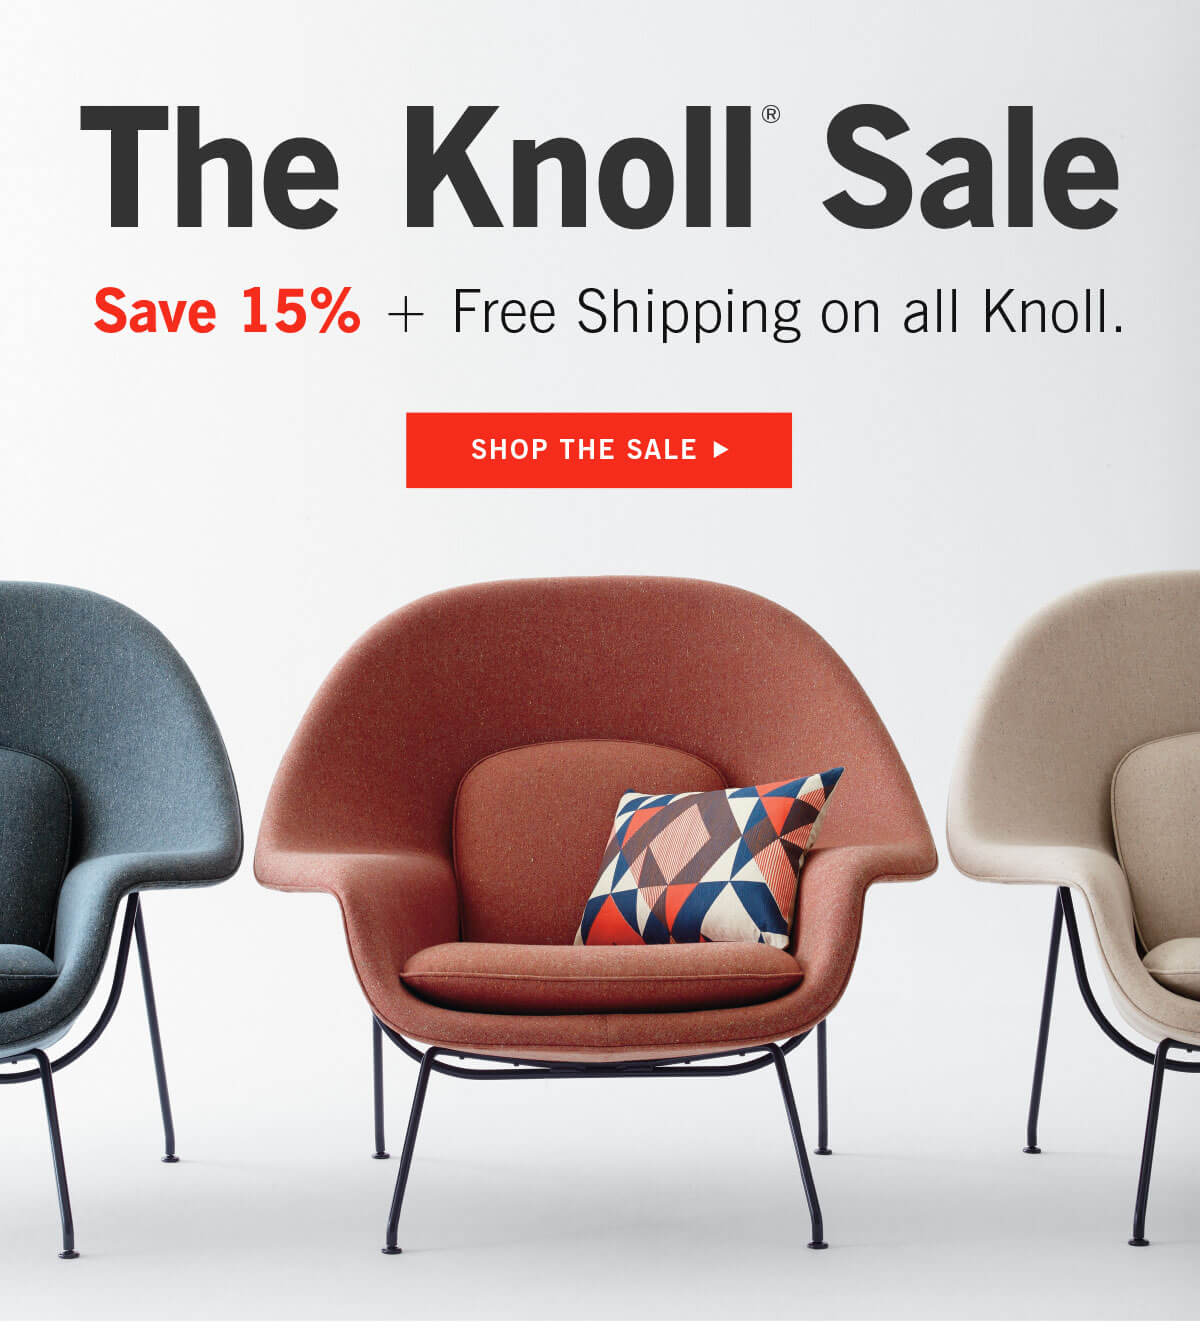 The Knoll Sale!